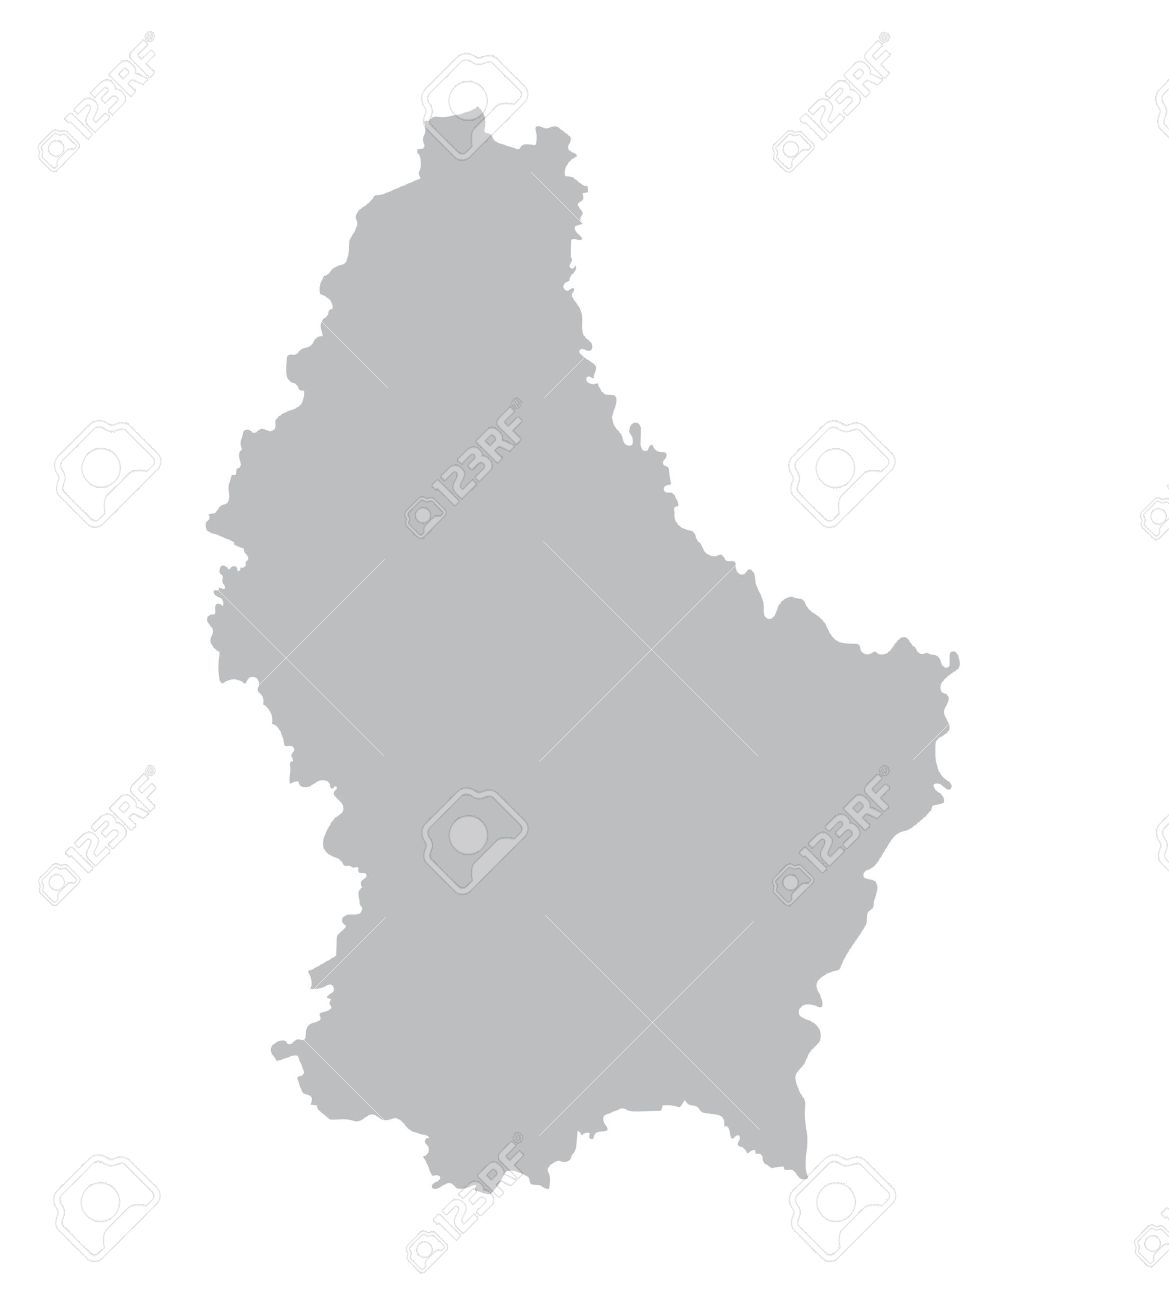 Grey Map Of Luxembourg Royalty Free Cliparts Vectors And Stock - Luxembourg map vector